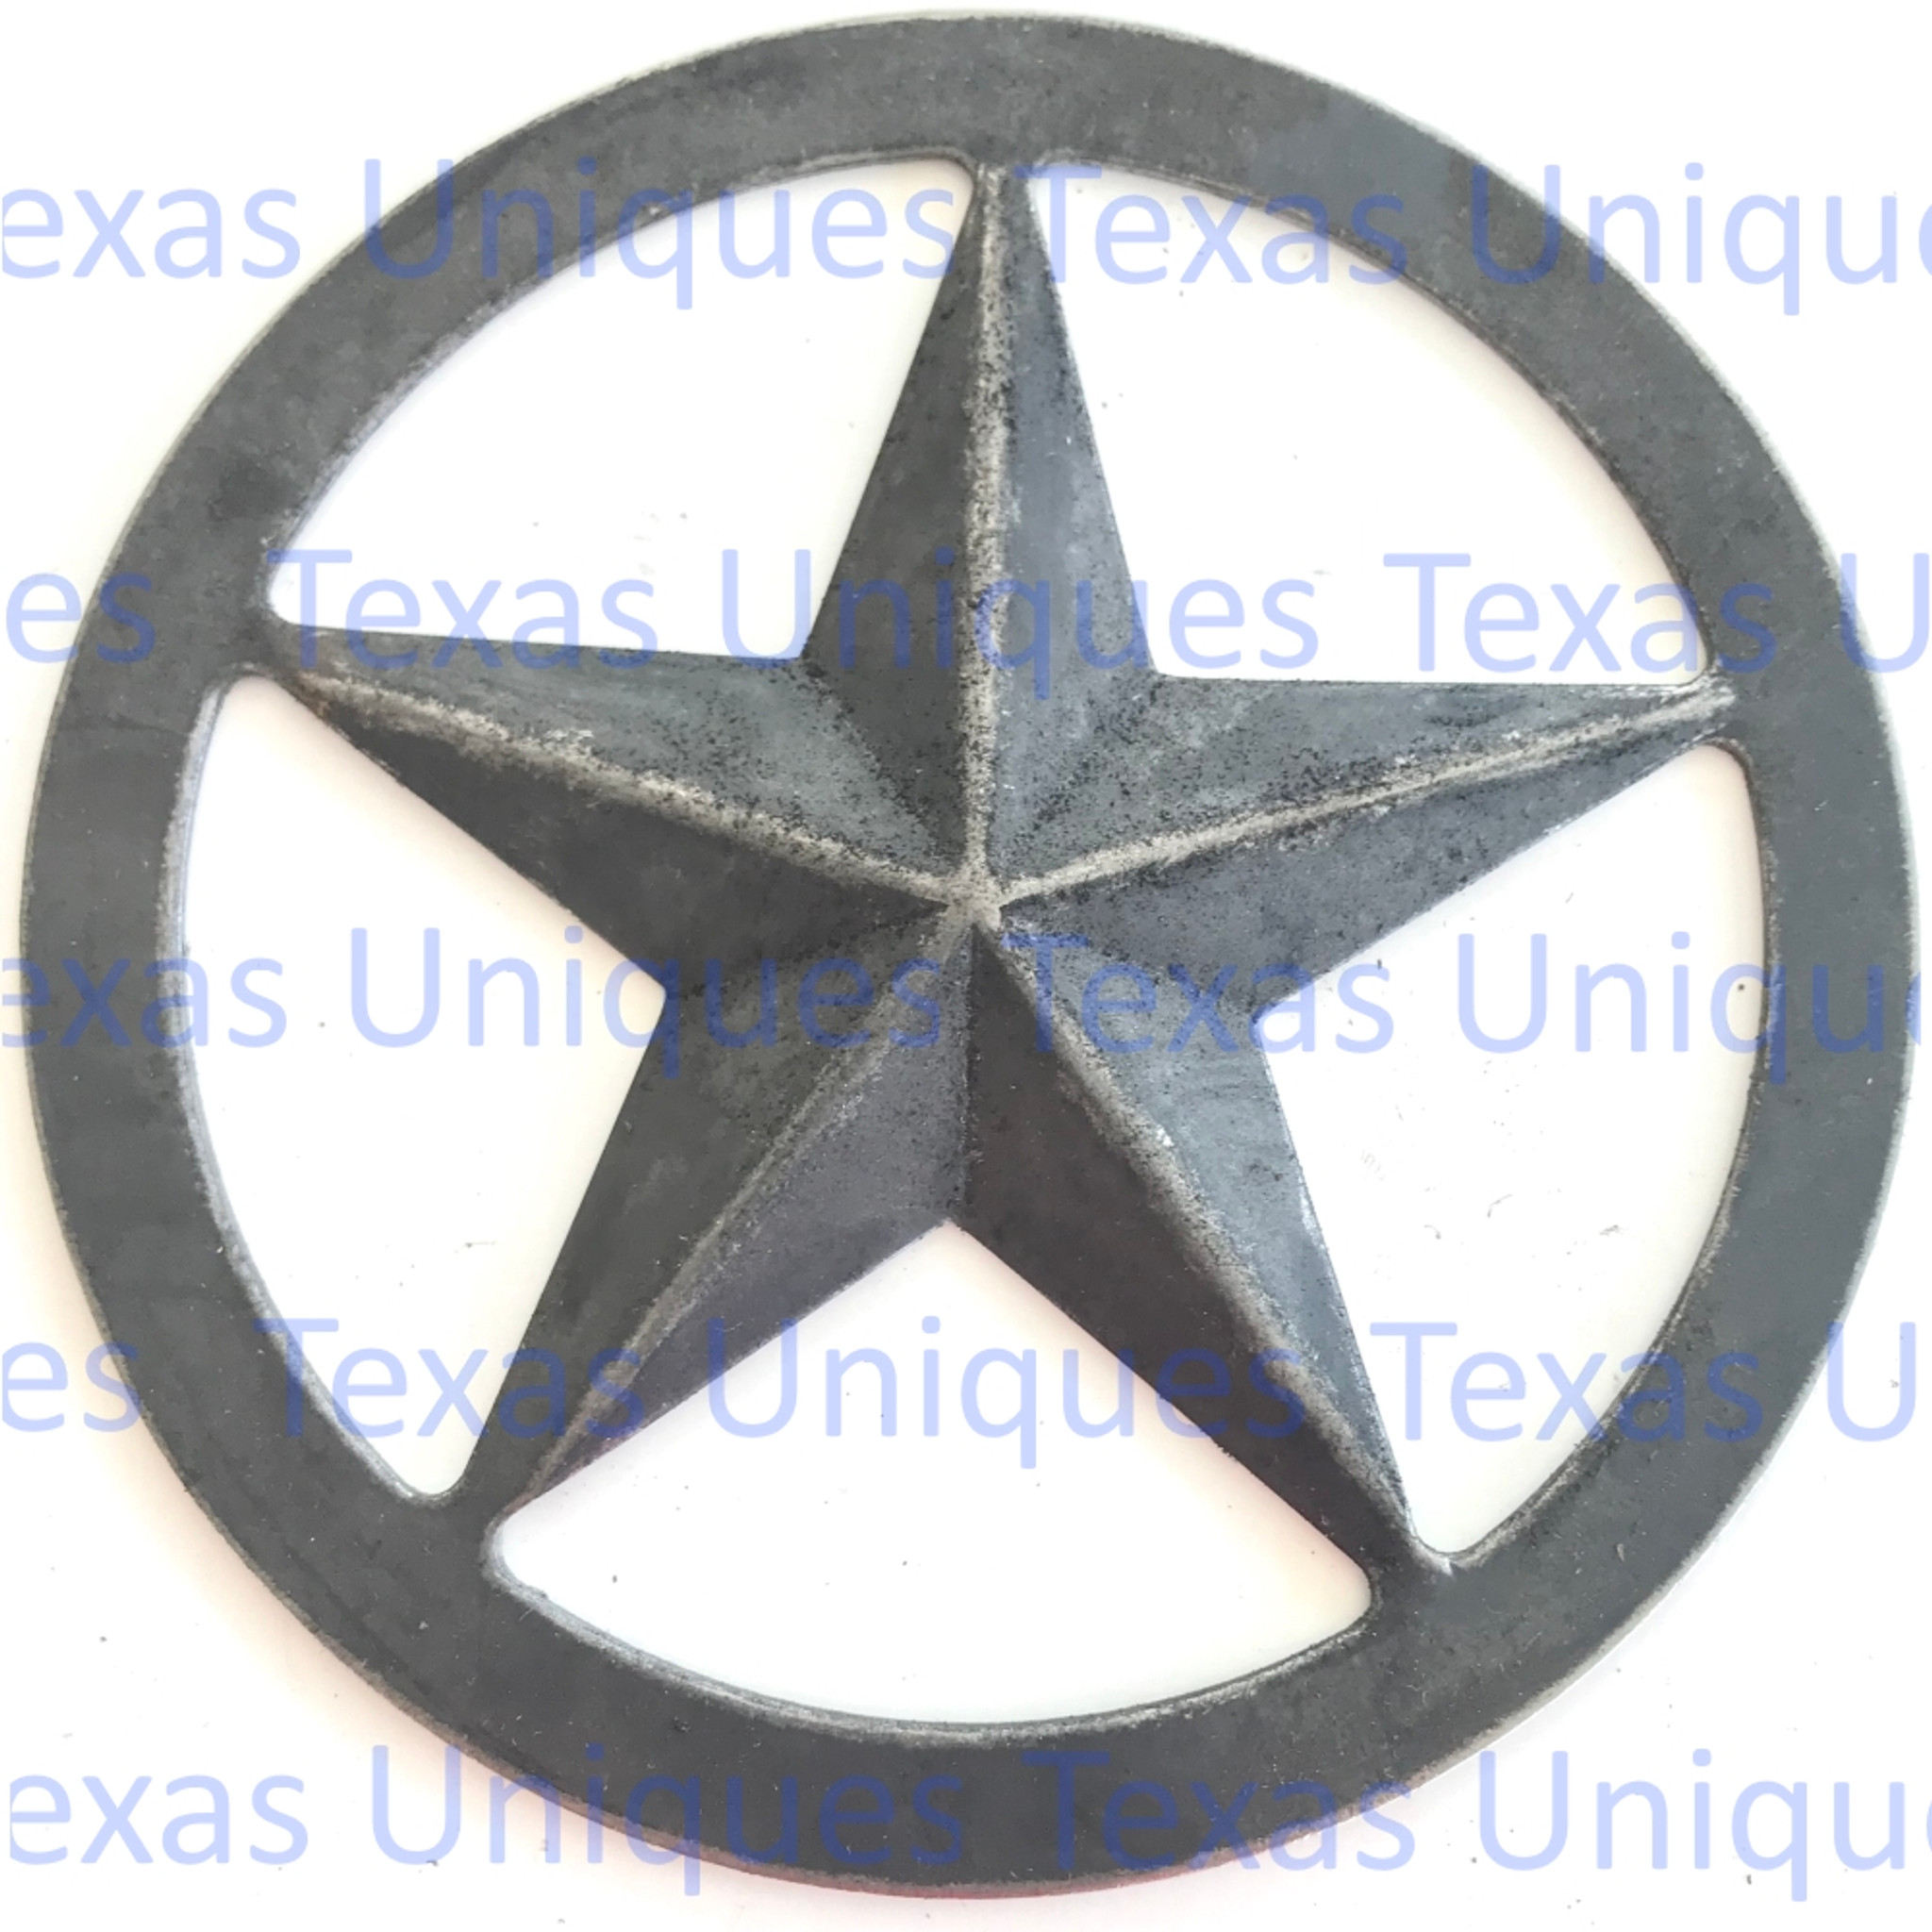 Metal Cut Out Of Texas Star Texas Uniques Store